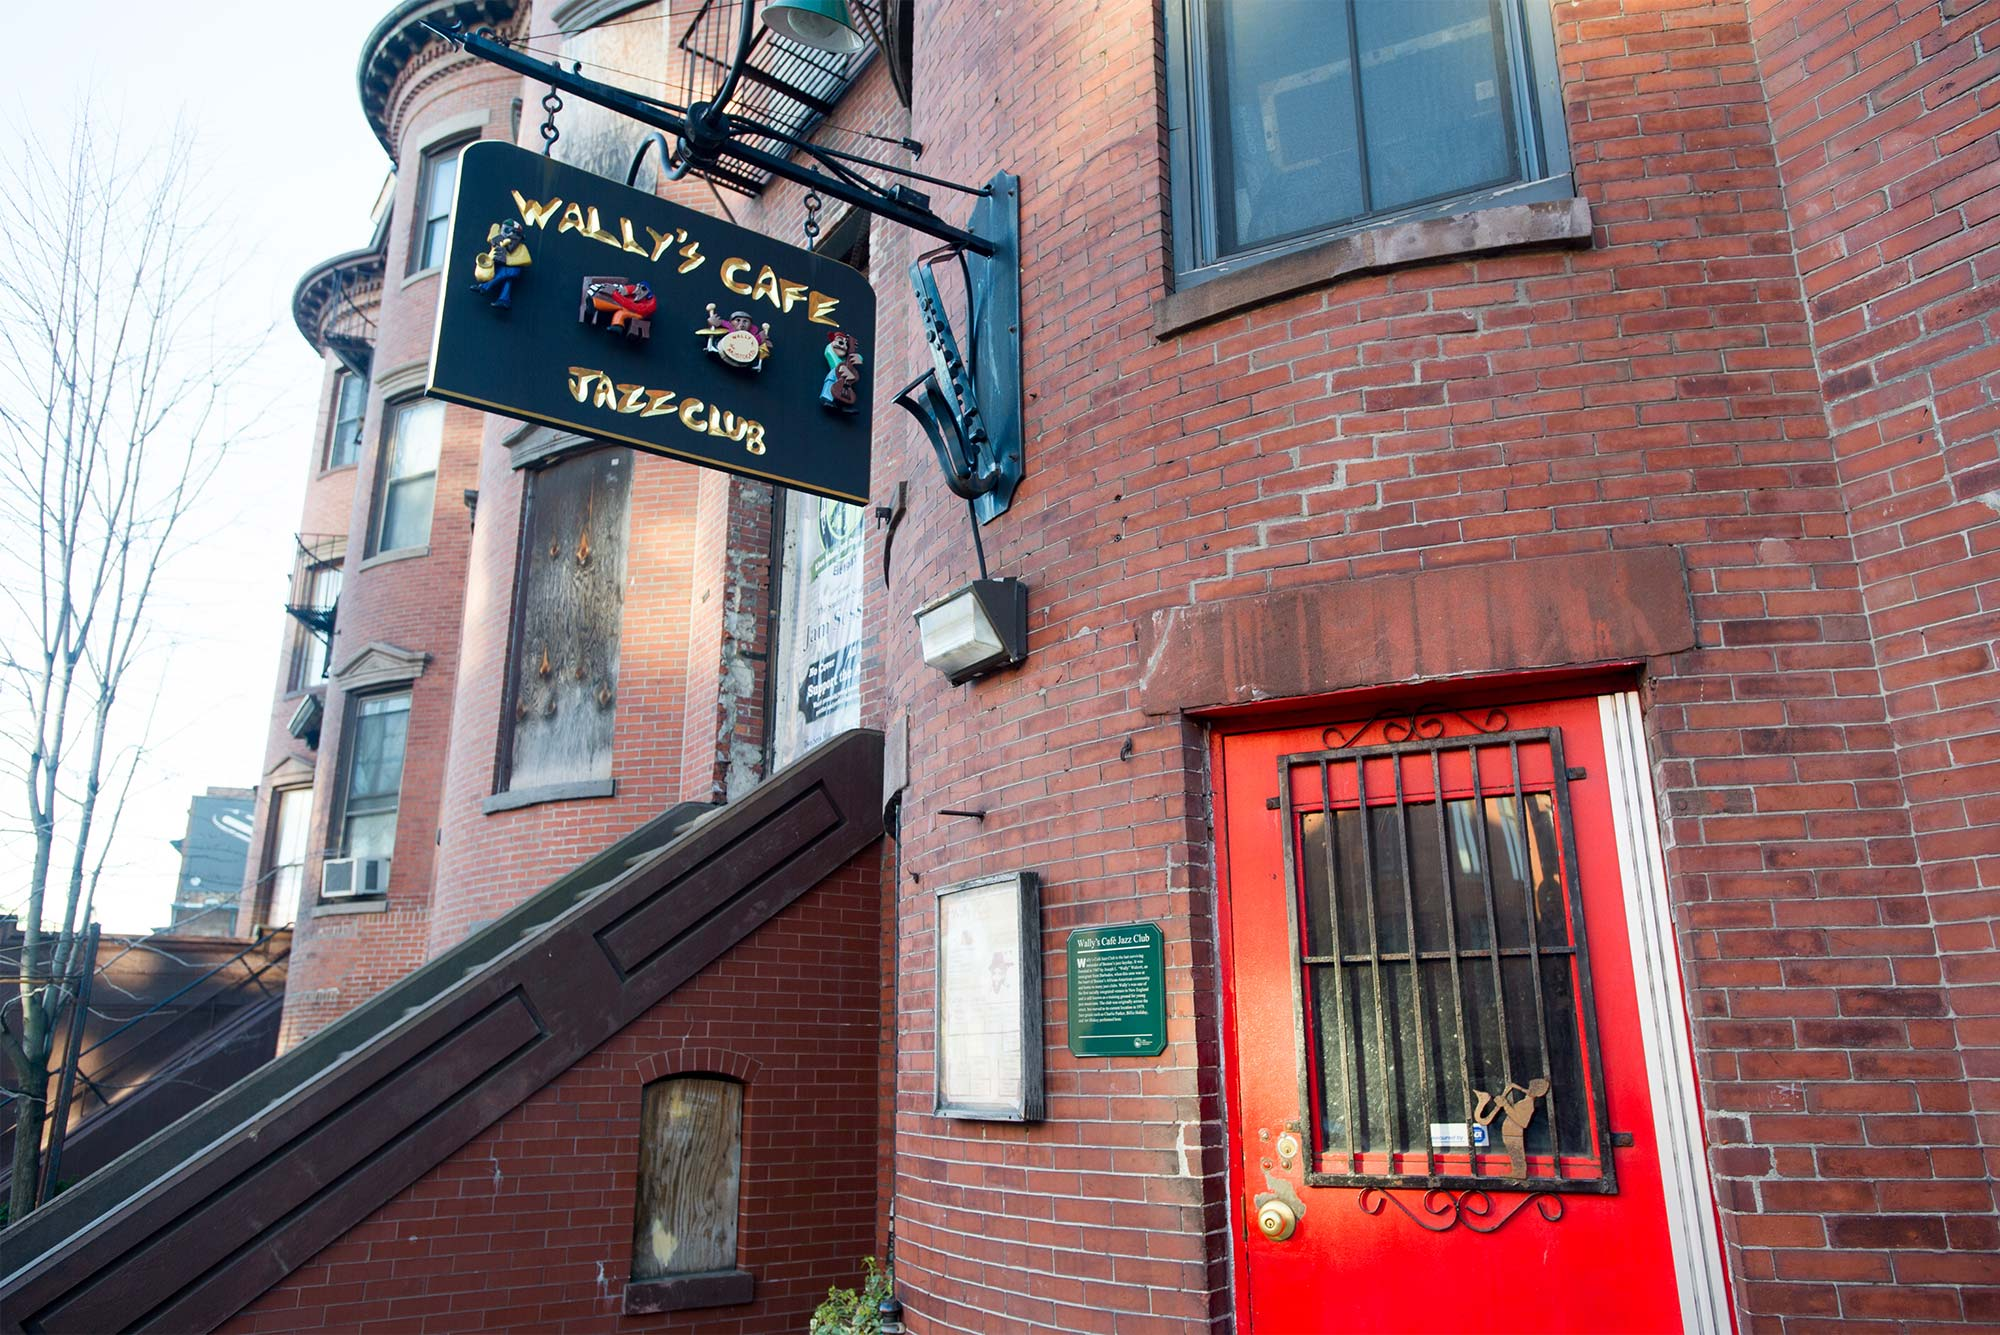 Exterior view of Wally's Cafe jazz club located at 427 Massachusetts Ave. in Boston.